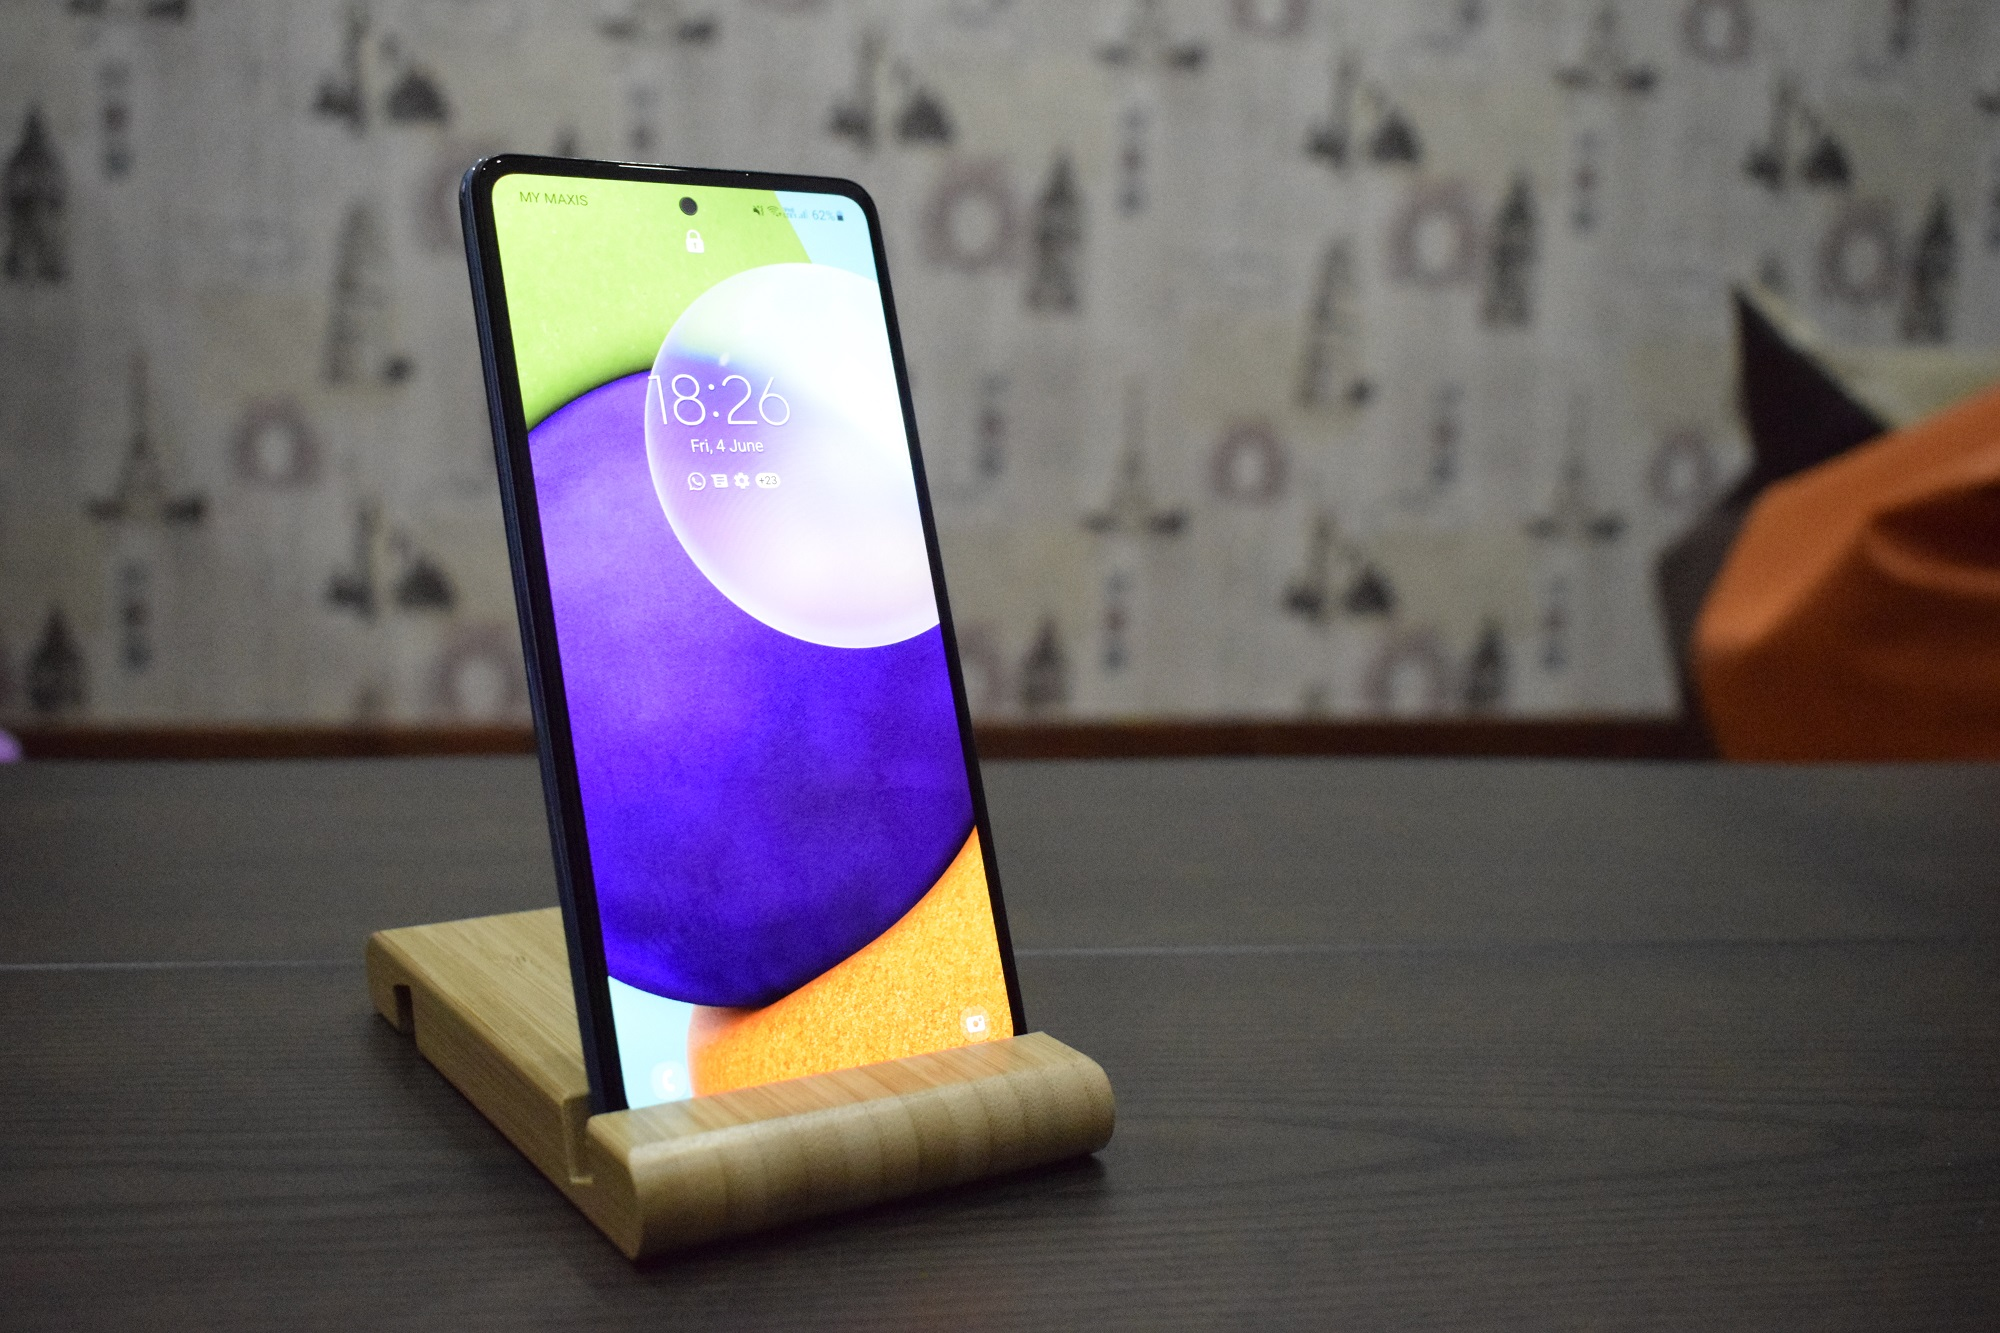 Samsung A52 Review: The powerhouse on a budget